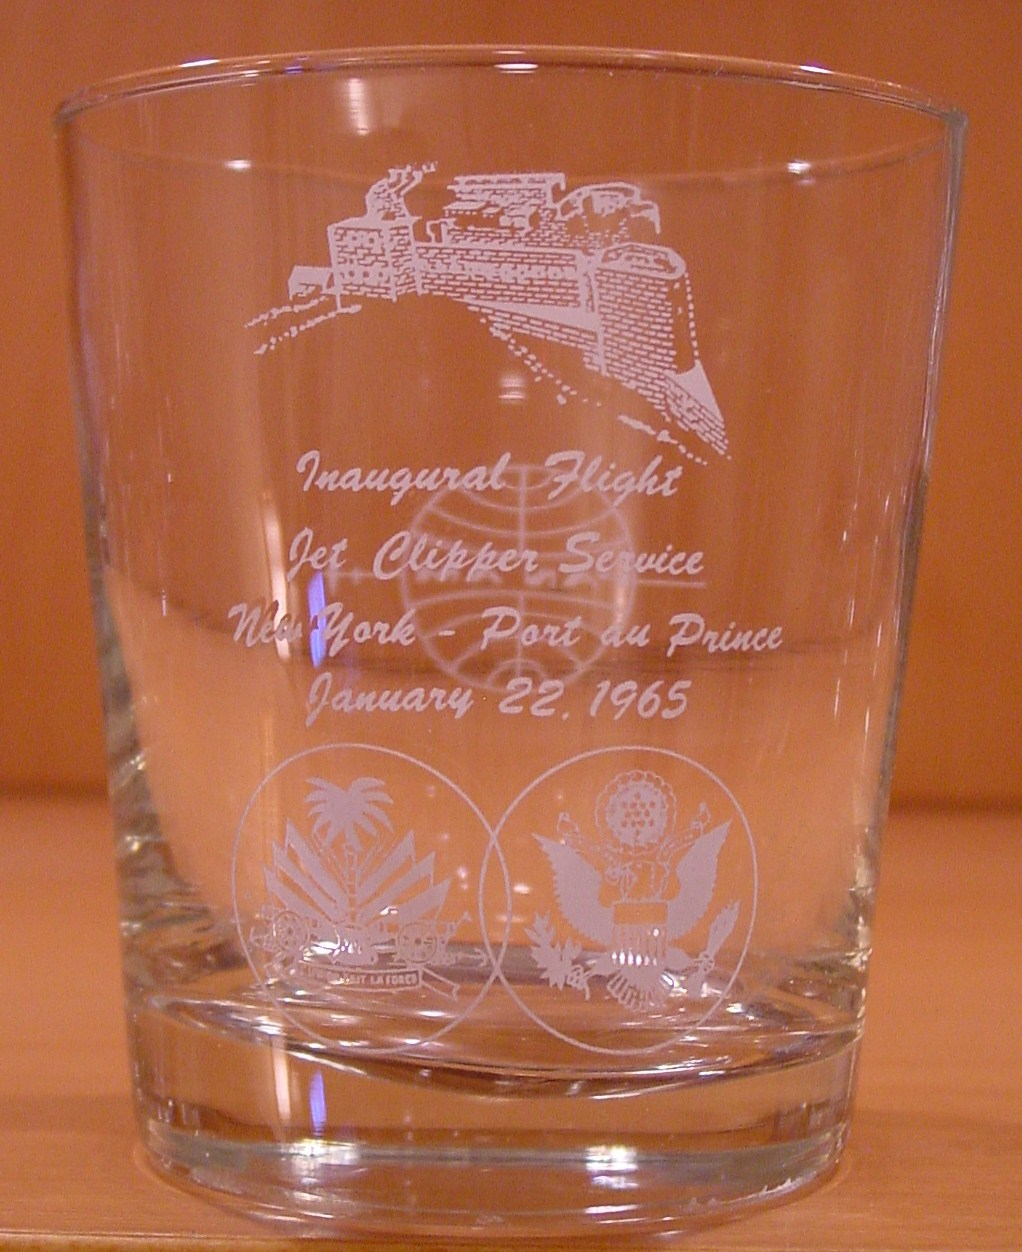 1965 January  22, A glass for the Inaugural jet flight from New York City to Port au Prince, Haiti.